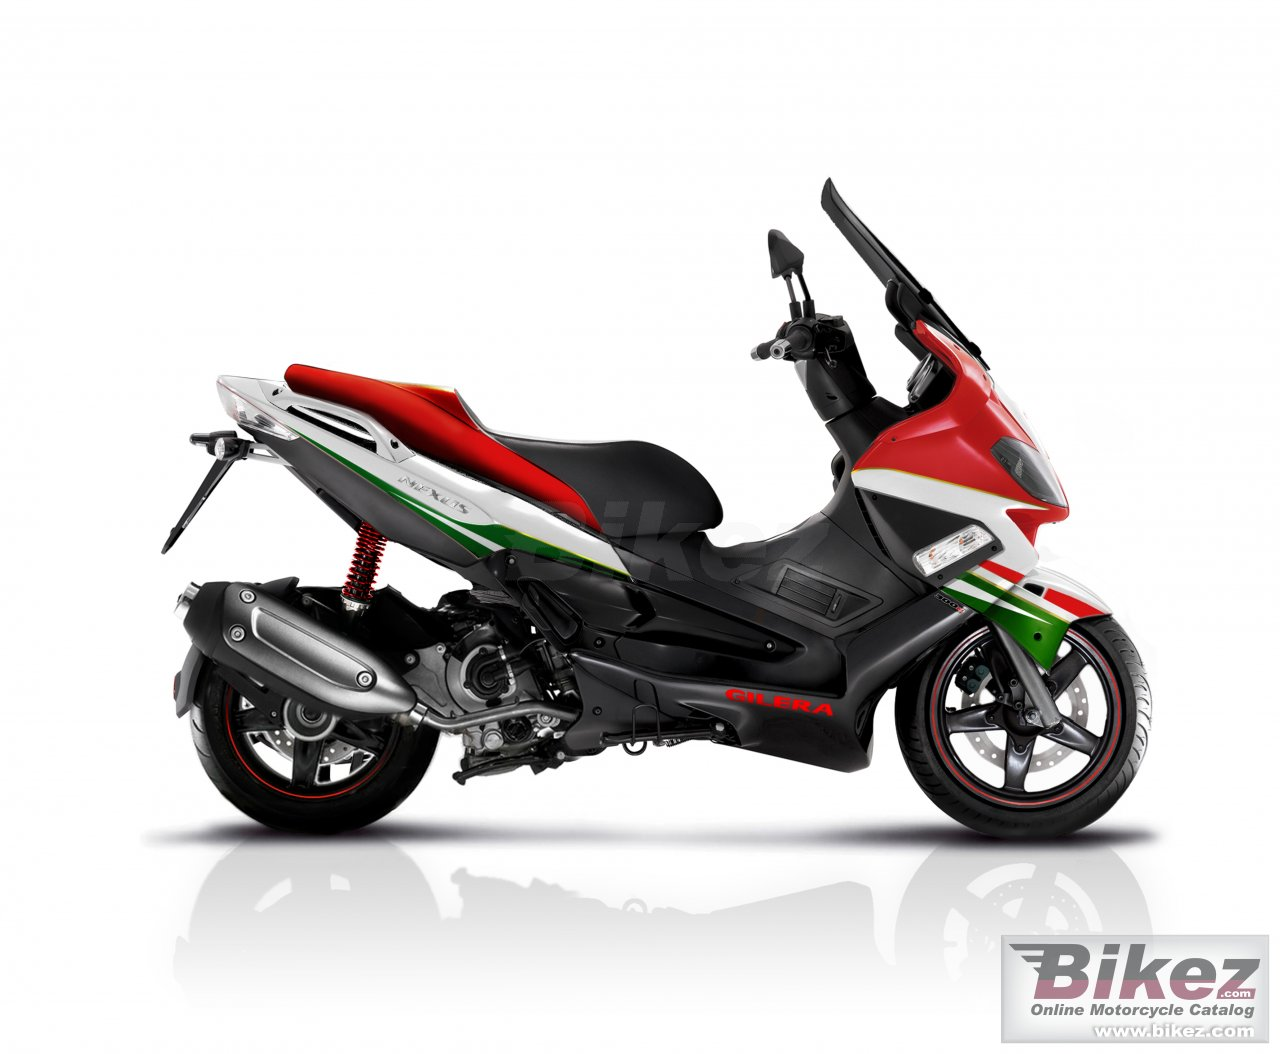 Big Gilera nexus 300 centenario picture and wallpaper from Bikez.com